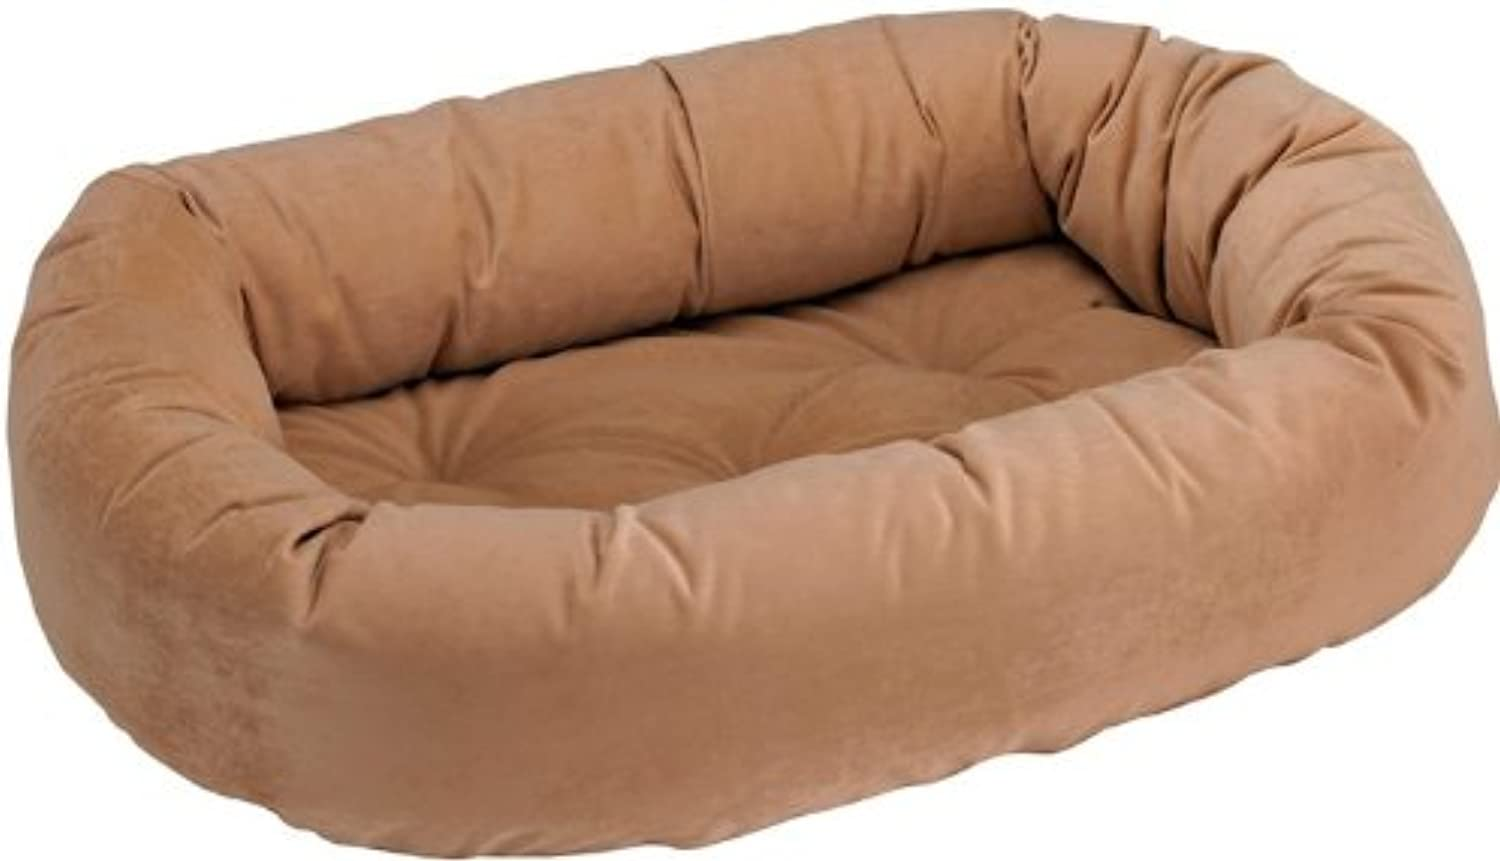 Bowsers Donut Bed, Small, Khaki